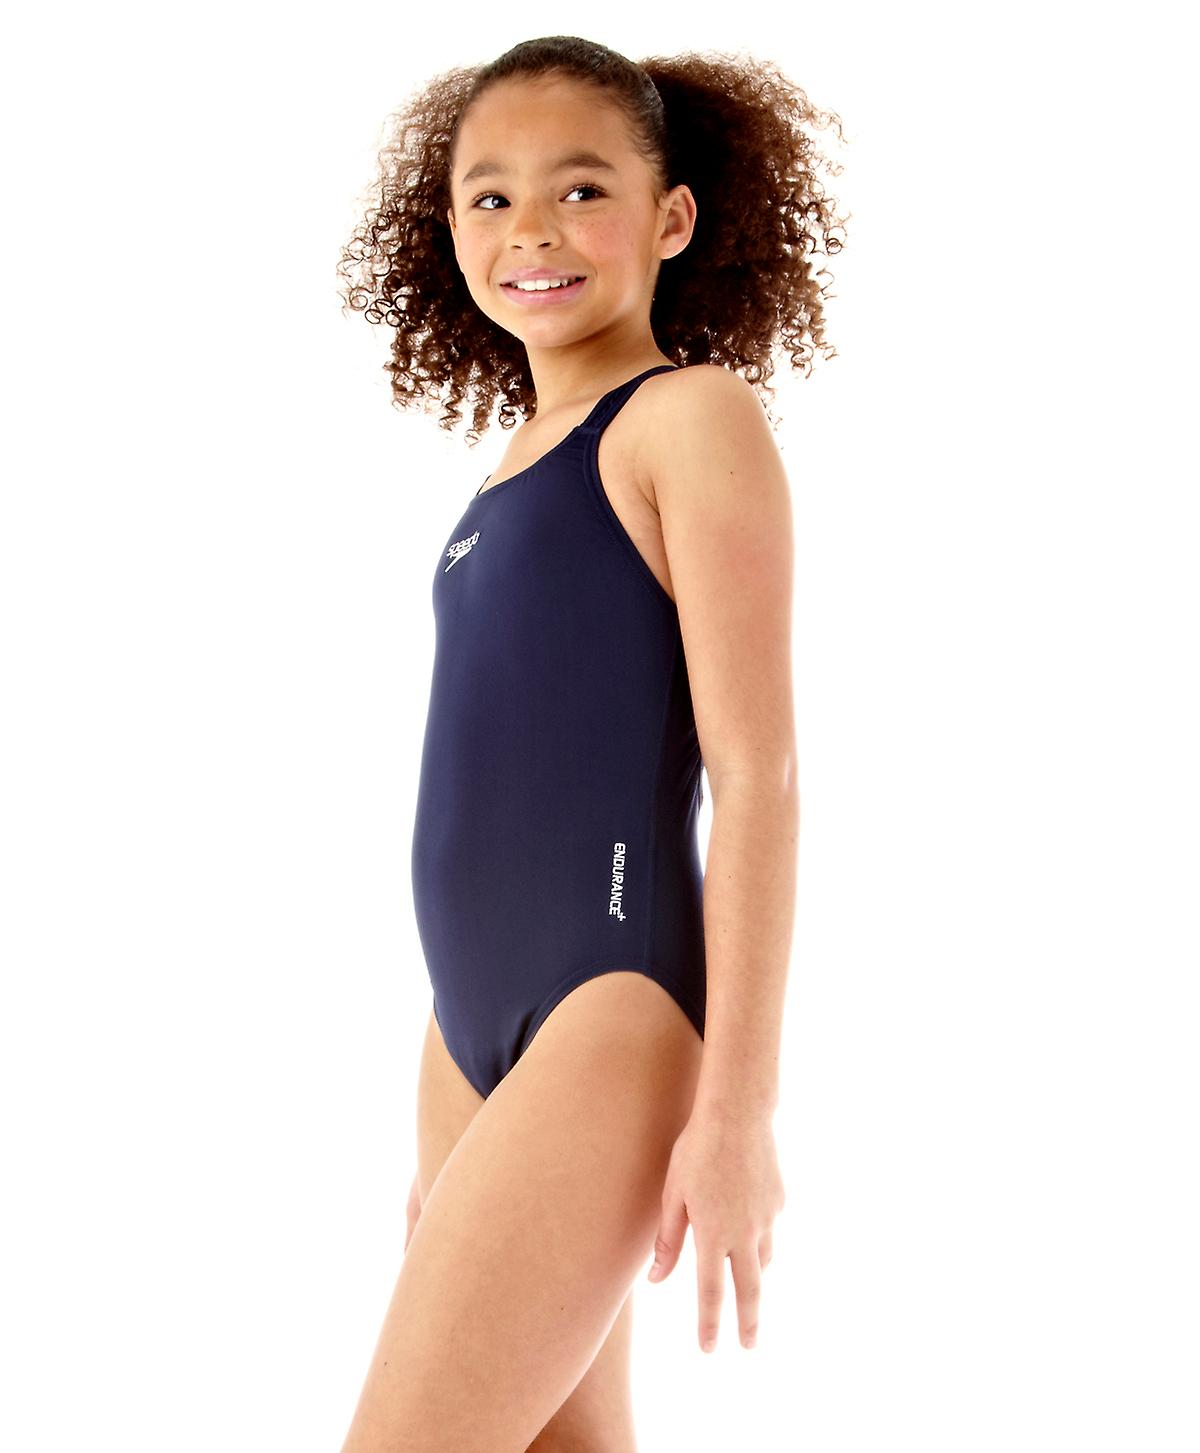 Speedo Junior Endurance+ Medalist - Navy